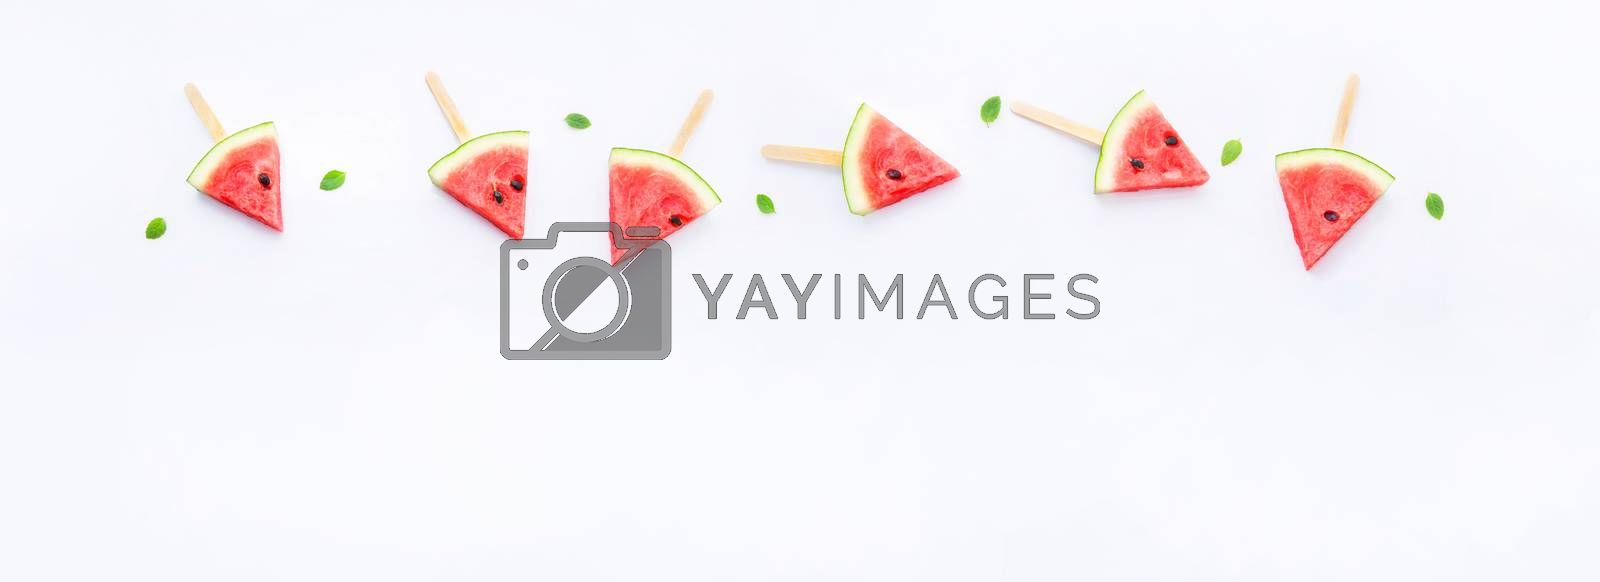 Watermelon slice popsicles on white background by Bowonpat